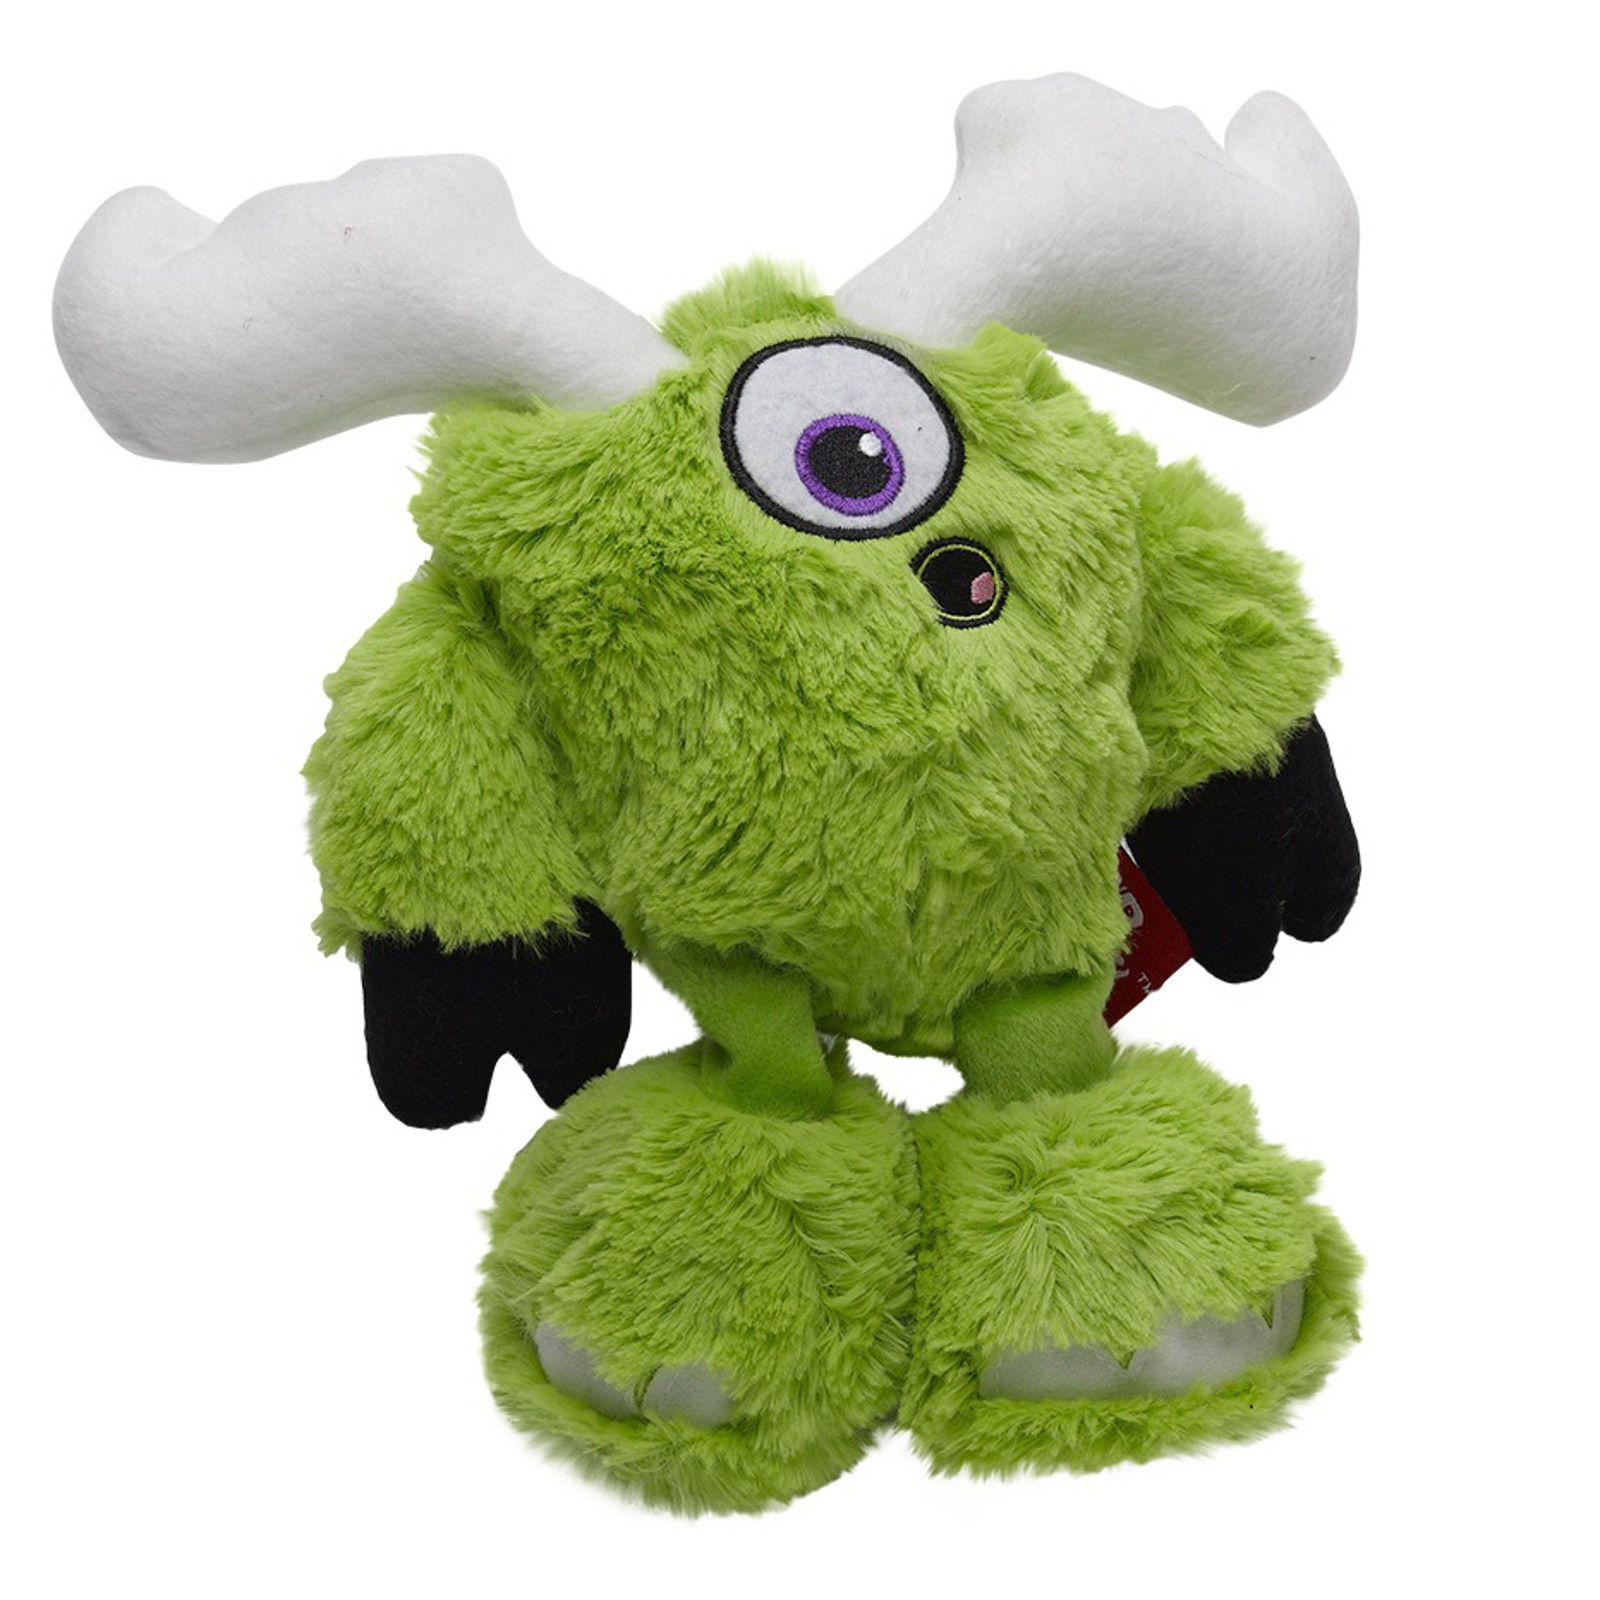 Hear Doggy! Dog Toys – Silent Squeaky Soft Toy